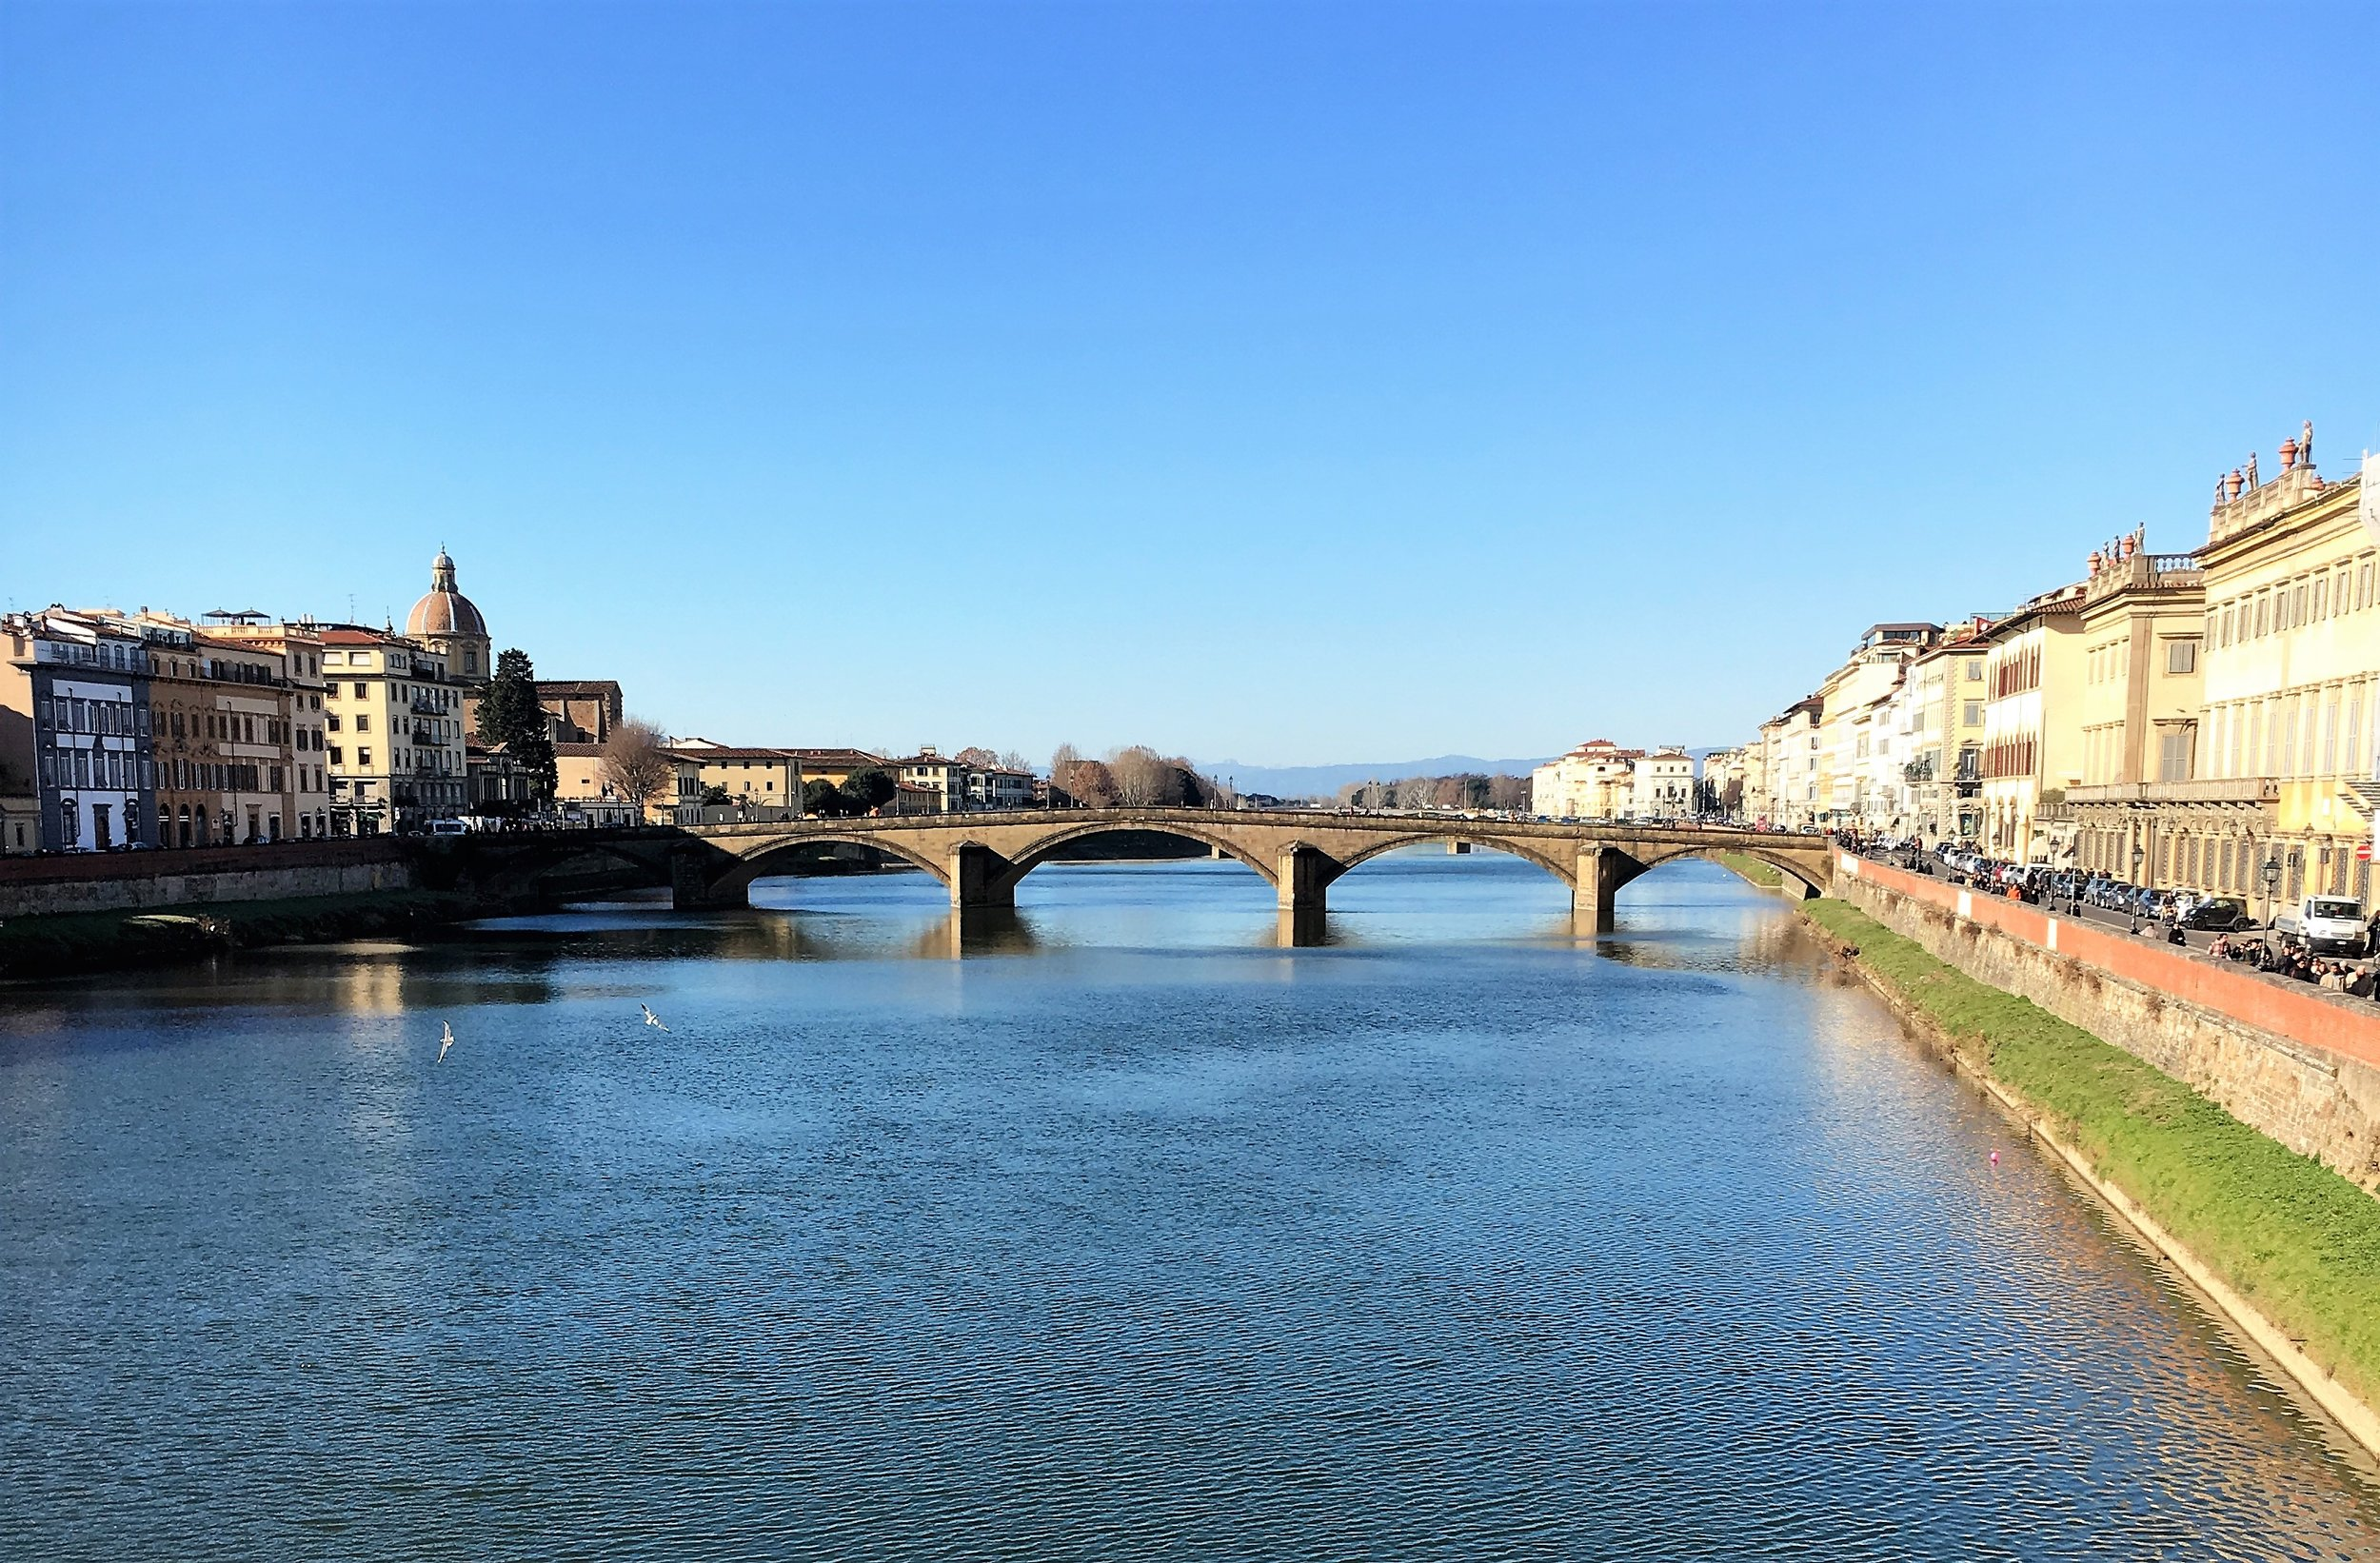 Florence was among the cities I visited on my first trip to Italy.